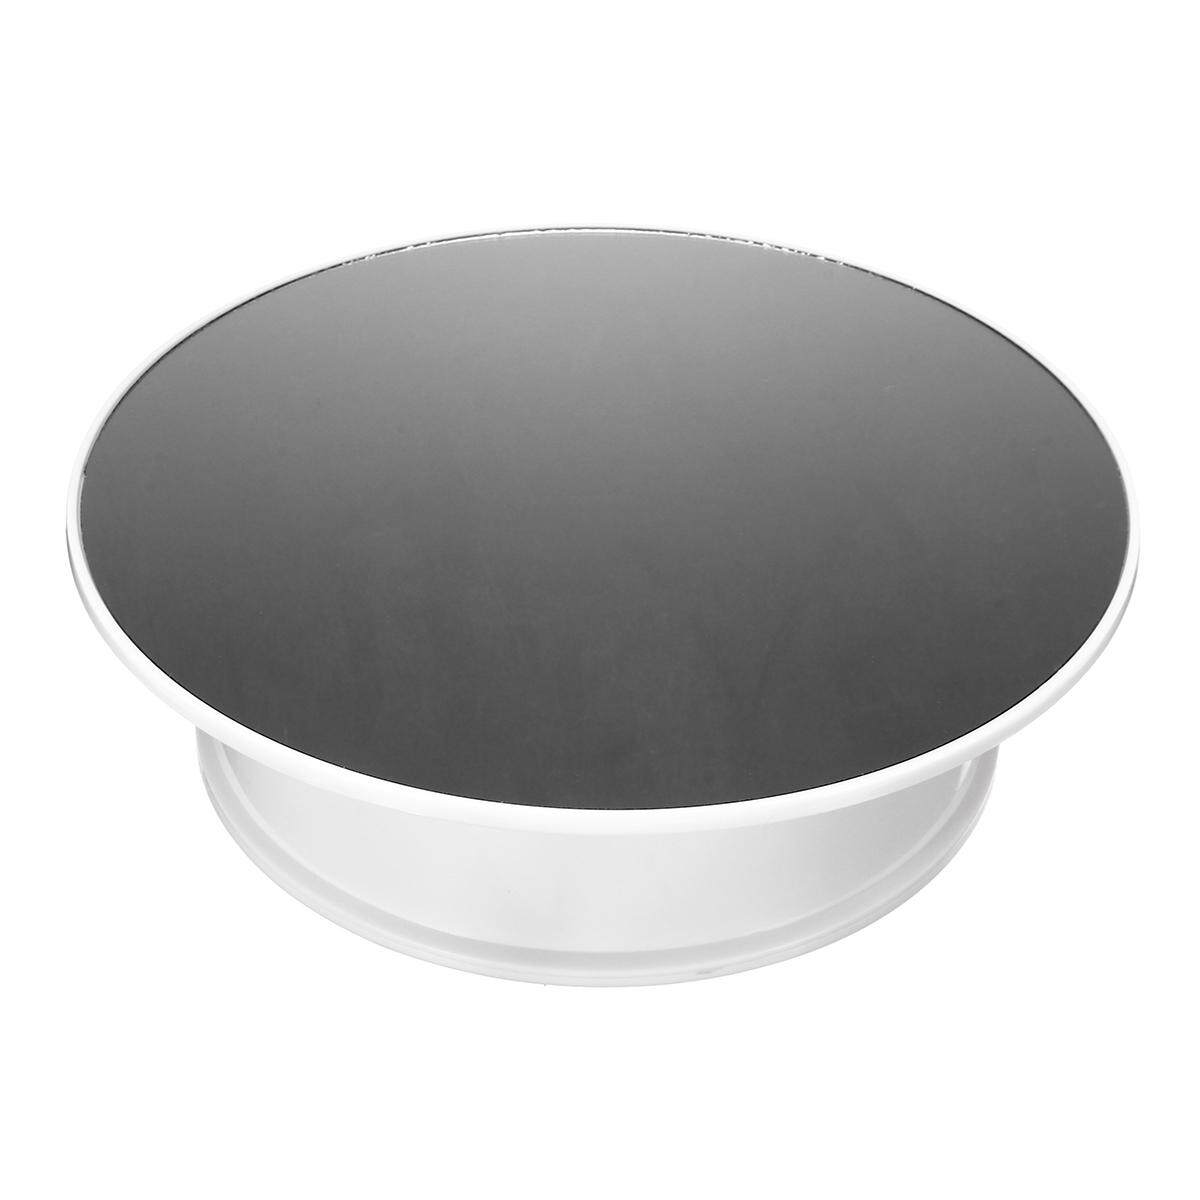 Round Velvet Top Electric Motorized 360° Rotating Display Stand Turntable White